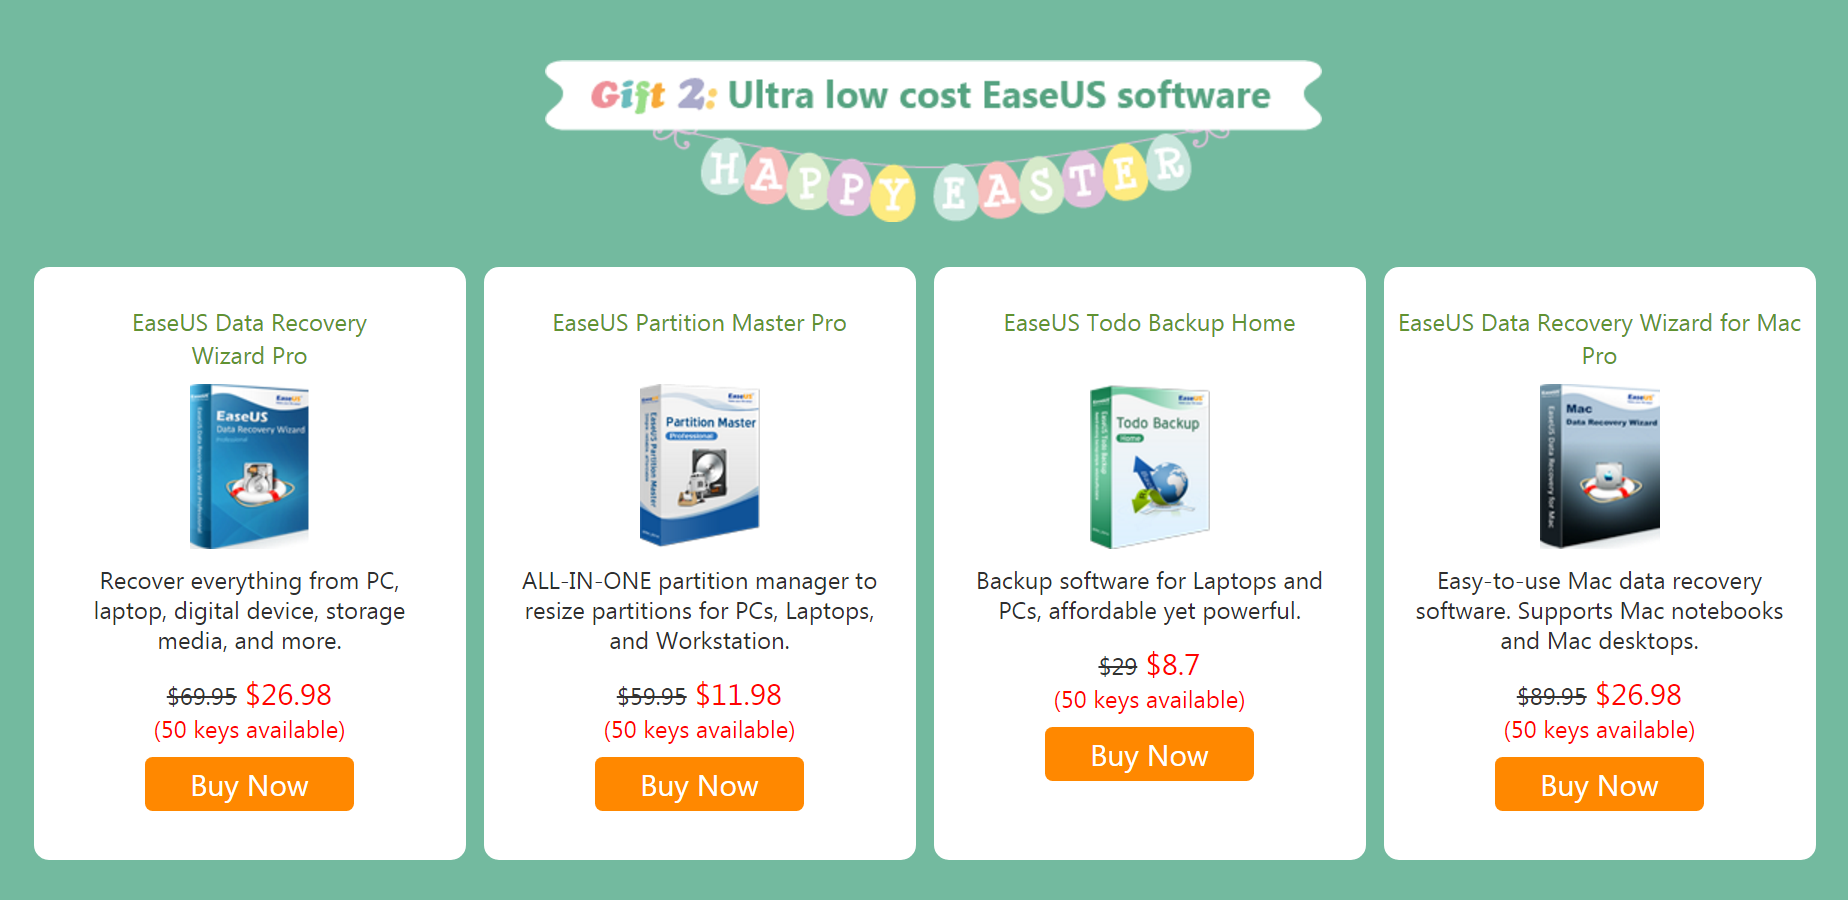 2017-04-13 11_18_17-Easter Special Offer – EaseUS Software – Cent Browser @3C 達人廖阿輝